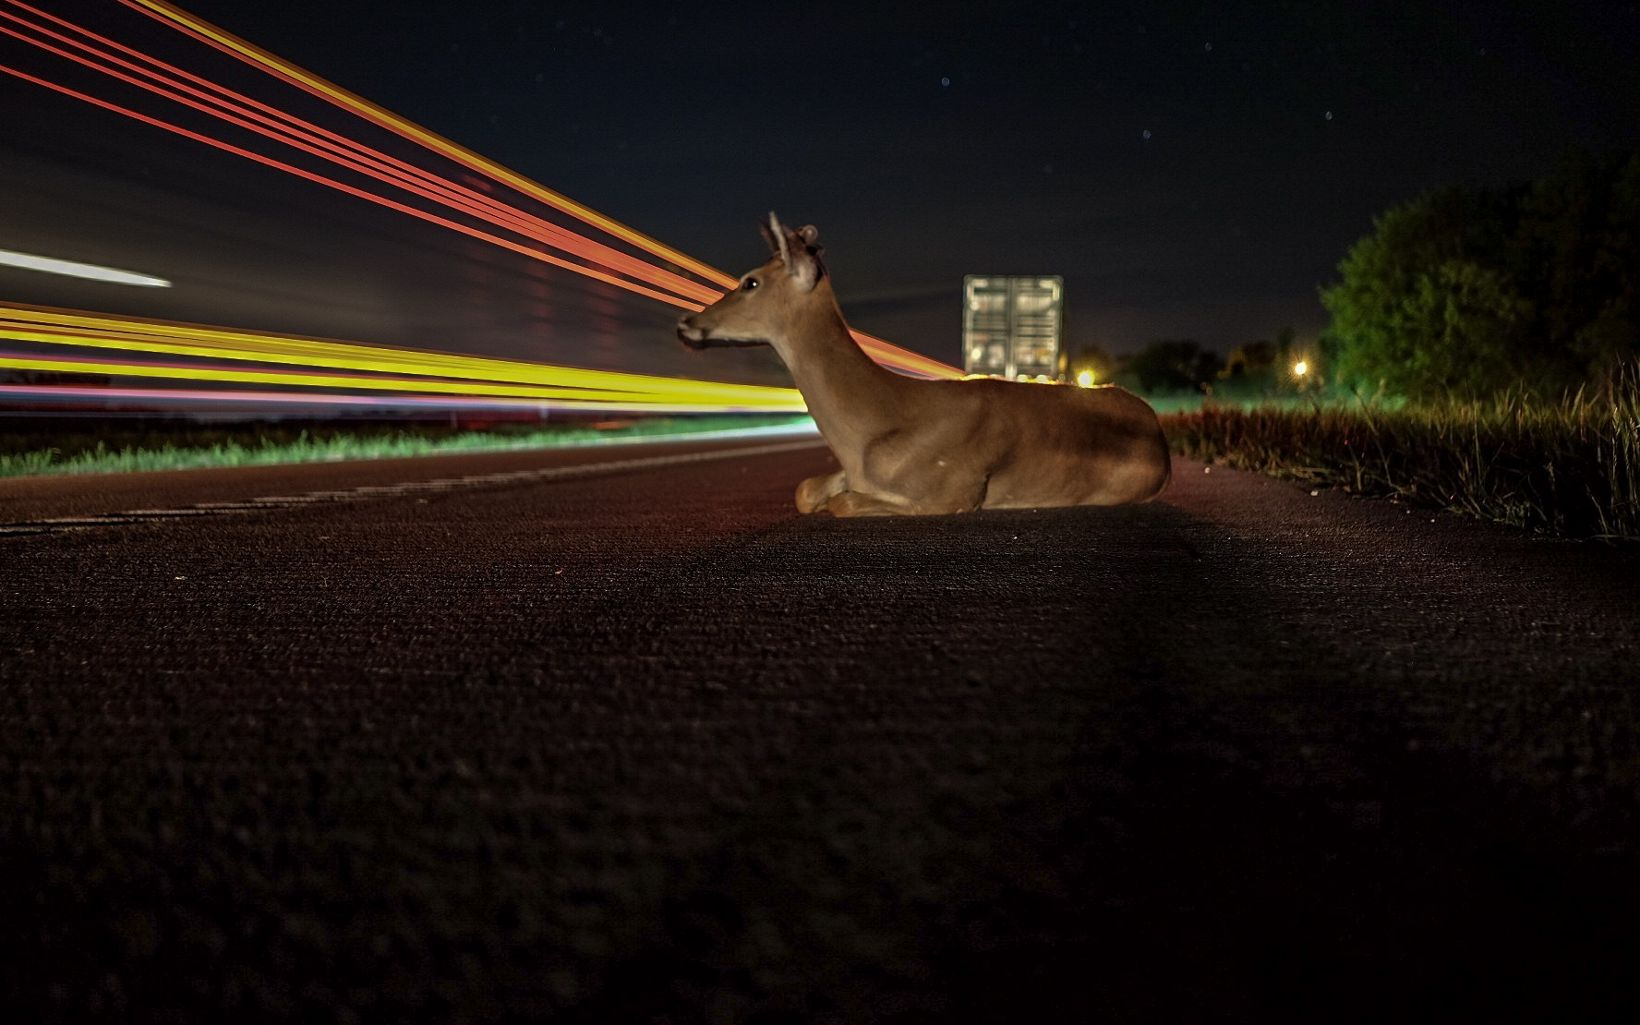 A deer rests on the side of the road along highway 49 in Nevada.